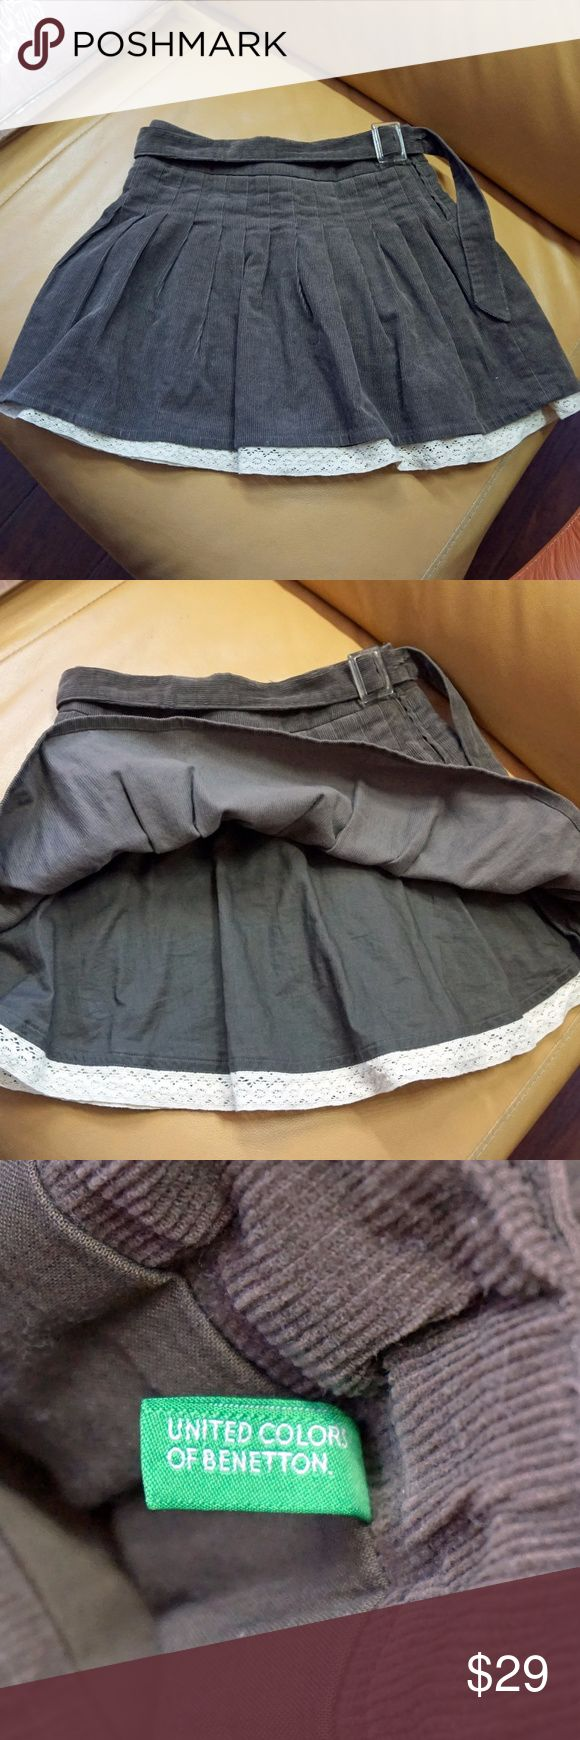 "BENETTON GIRL'S VELVET SKIRT 6/7Y BENETTON GIRL'S SKIRT Velvet Cotton Lined Size S 6-7 Years Brown A-Line Gifts AMAZING VELVET SKIRT! BEAUTIFUL CONDITION.WORN 2-3 TIMES ONLY.  100% COTTON VELVET.  100% COTTON LINING WITH LACE DECOR ON HEM.  DARK BROWN.ADJUSTABLE WAIST.  SIZE:S / 6-7 YEAR.  SIDE ZIPPER.ADJUSTABLE BELT.  FULL LENGTH 12.5""  WAIST 22-23"" around.ADJUSTABLE.  UNITED COLORS OF BENETTON. United Colors Of Benetton Bottoms Skirts"